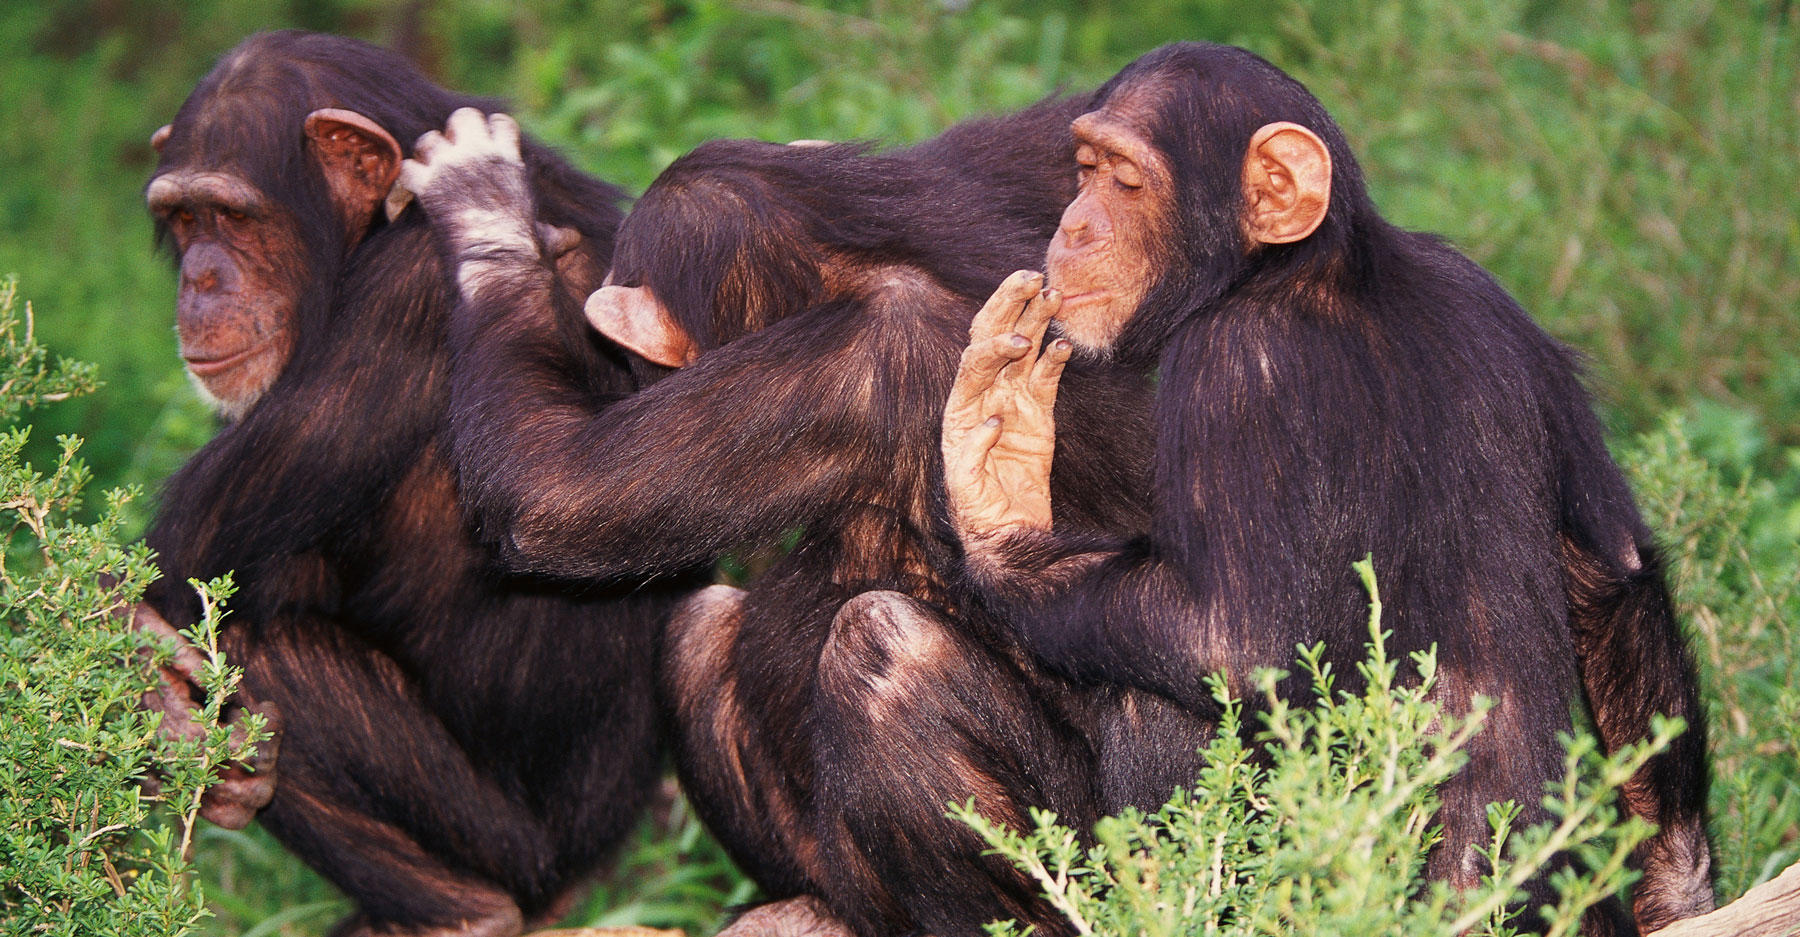 Three chimps grooming each other.